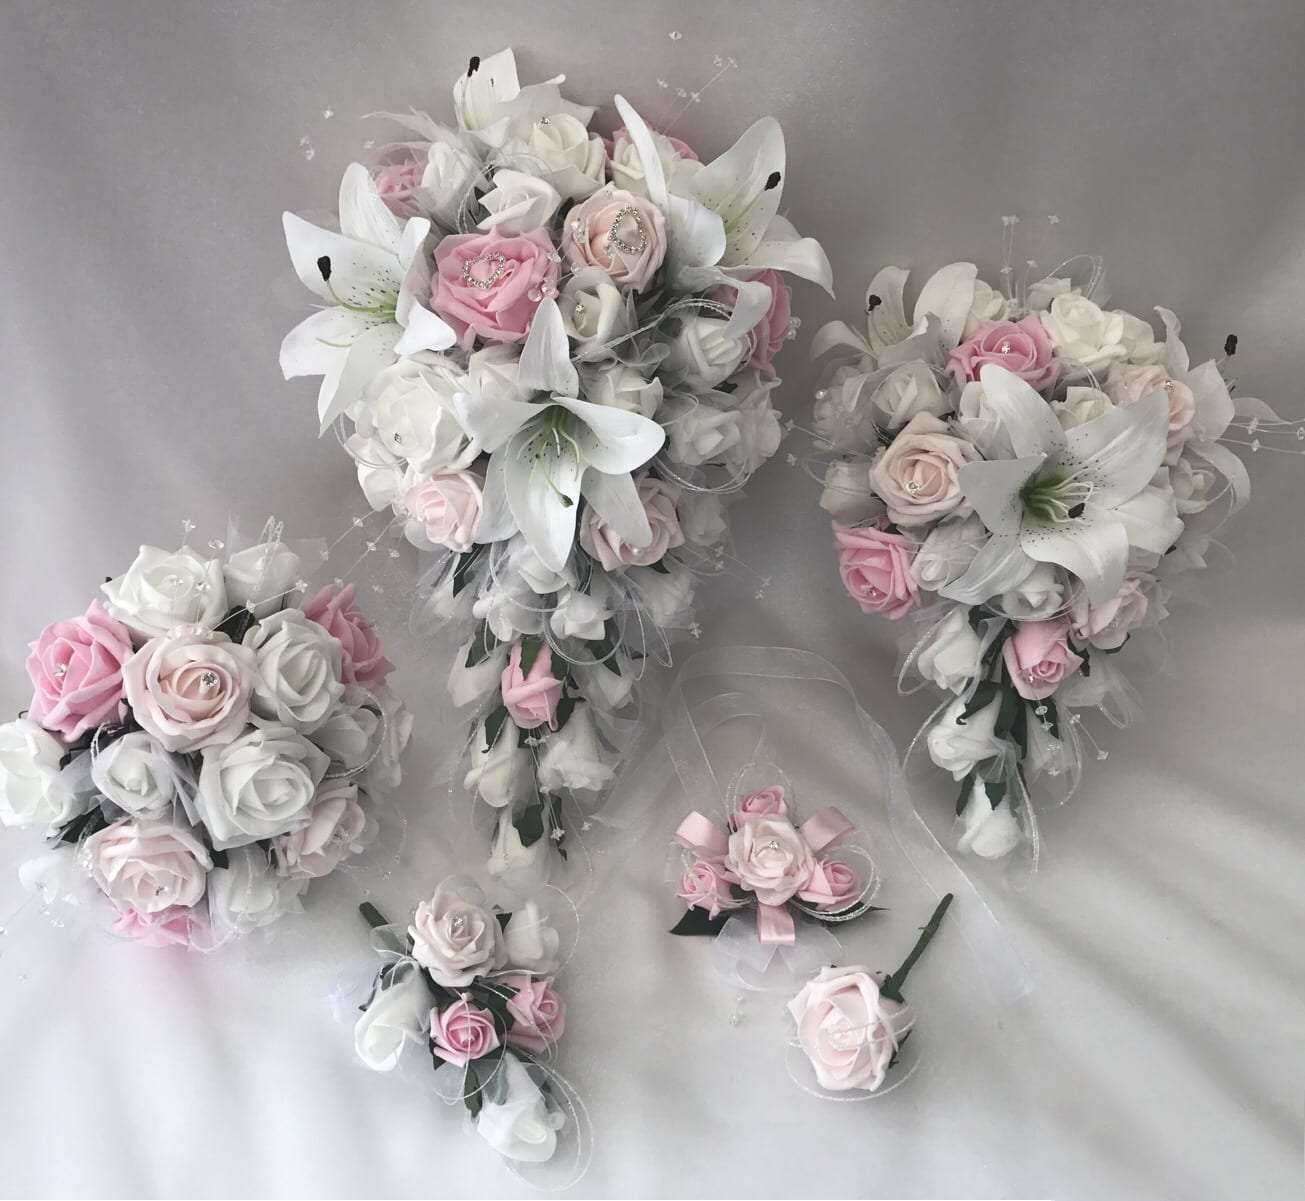 Wedding Flower Packages Cheap: Artificial Wedding Flowers Package Star Lillies Roses (3